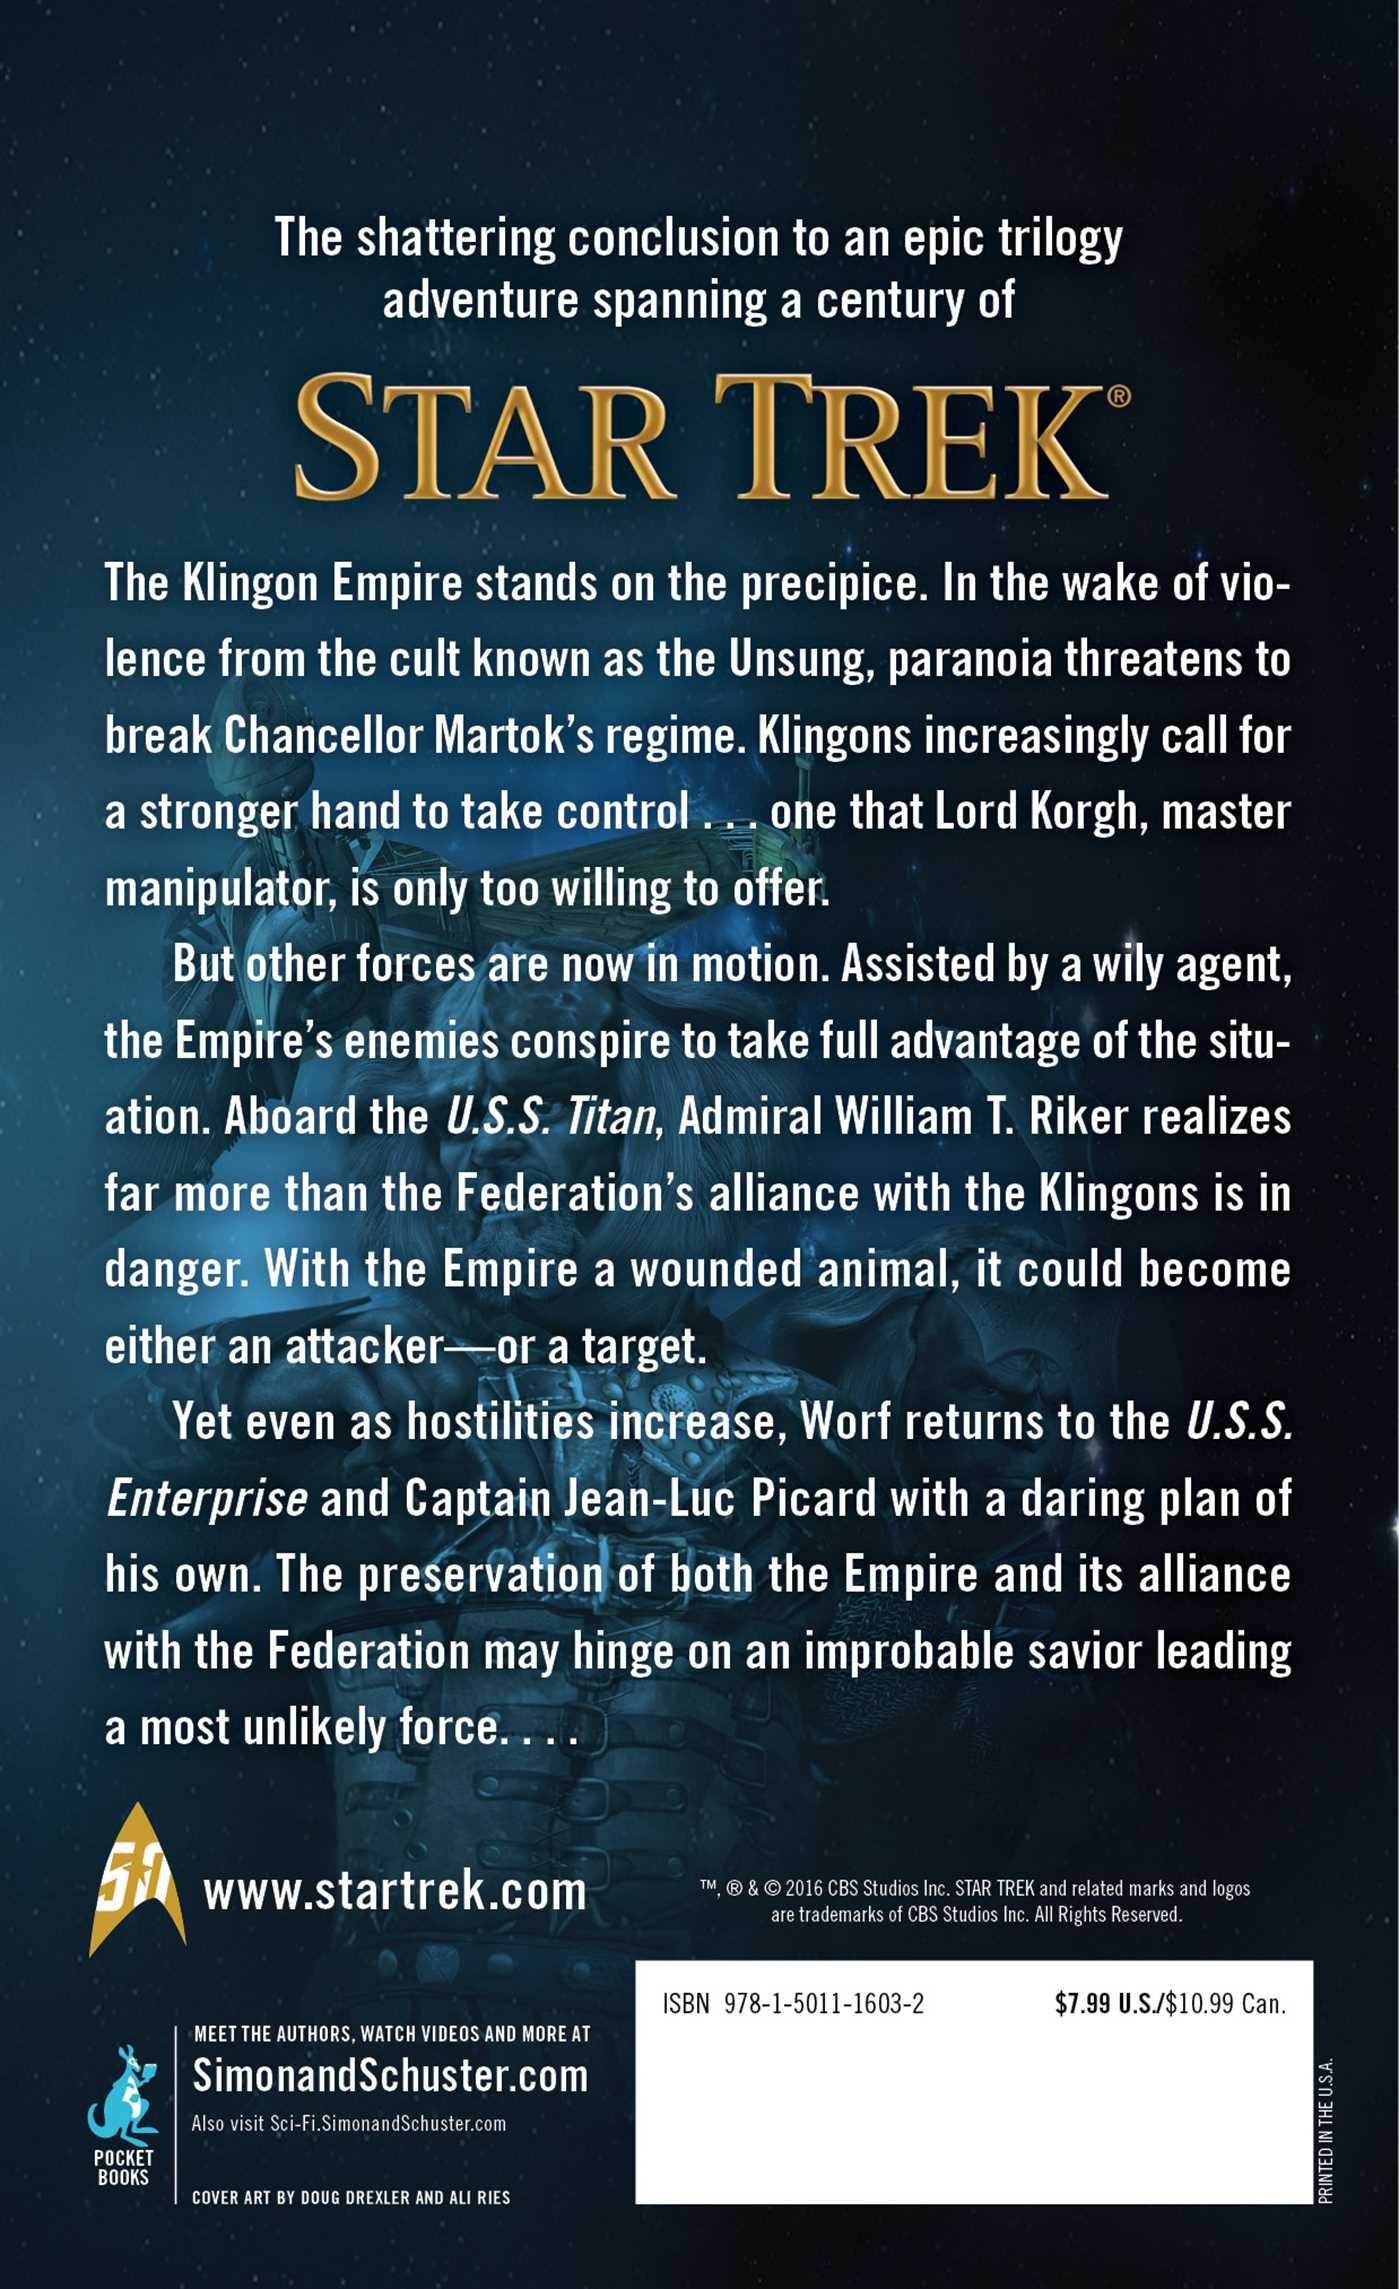 Star trek the hall of heroes 9781501116032 hr back